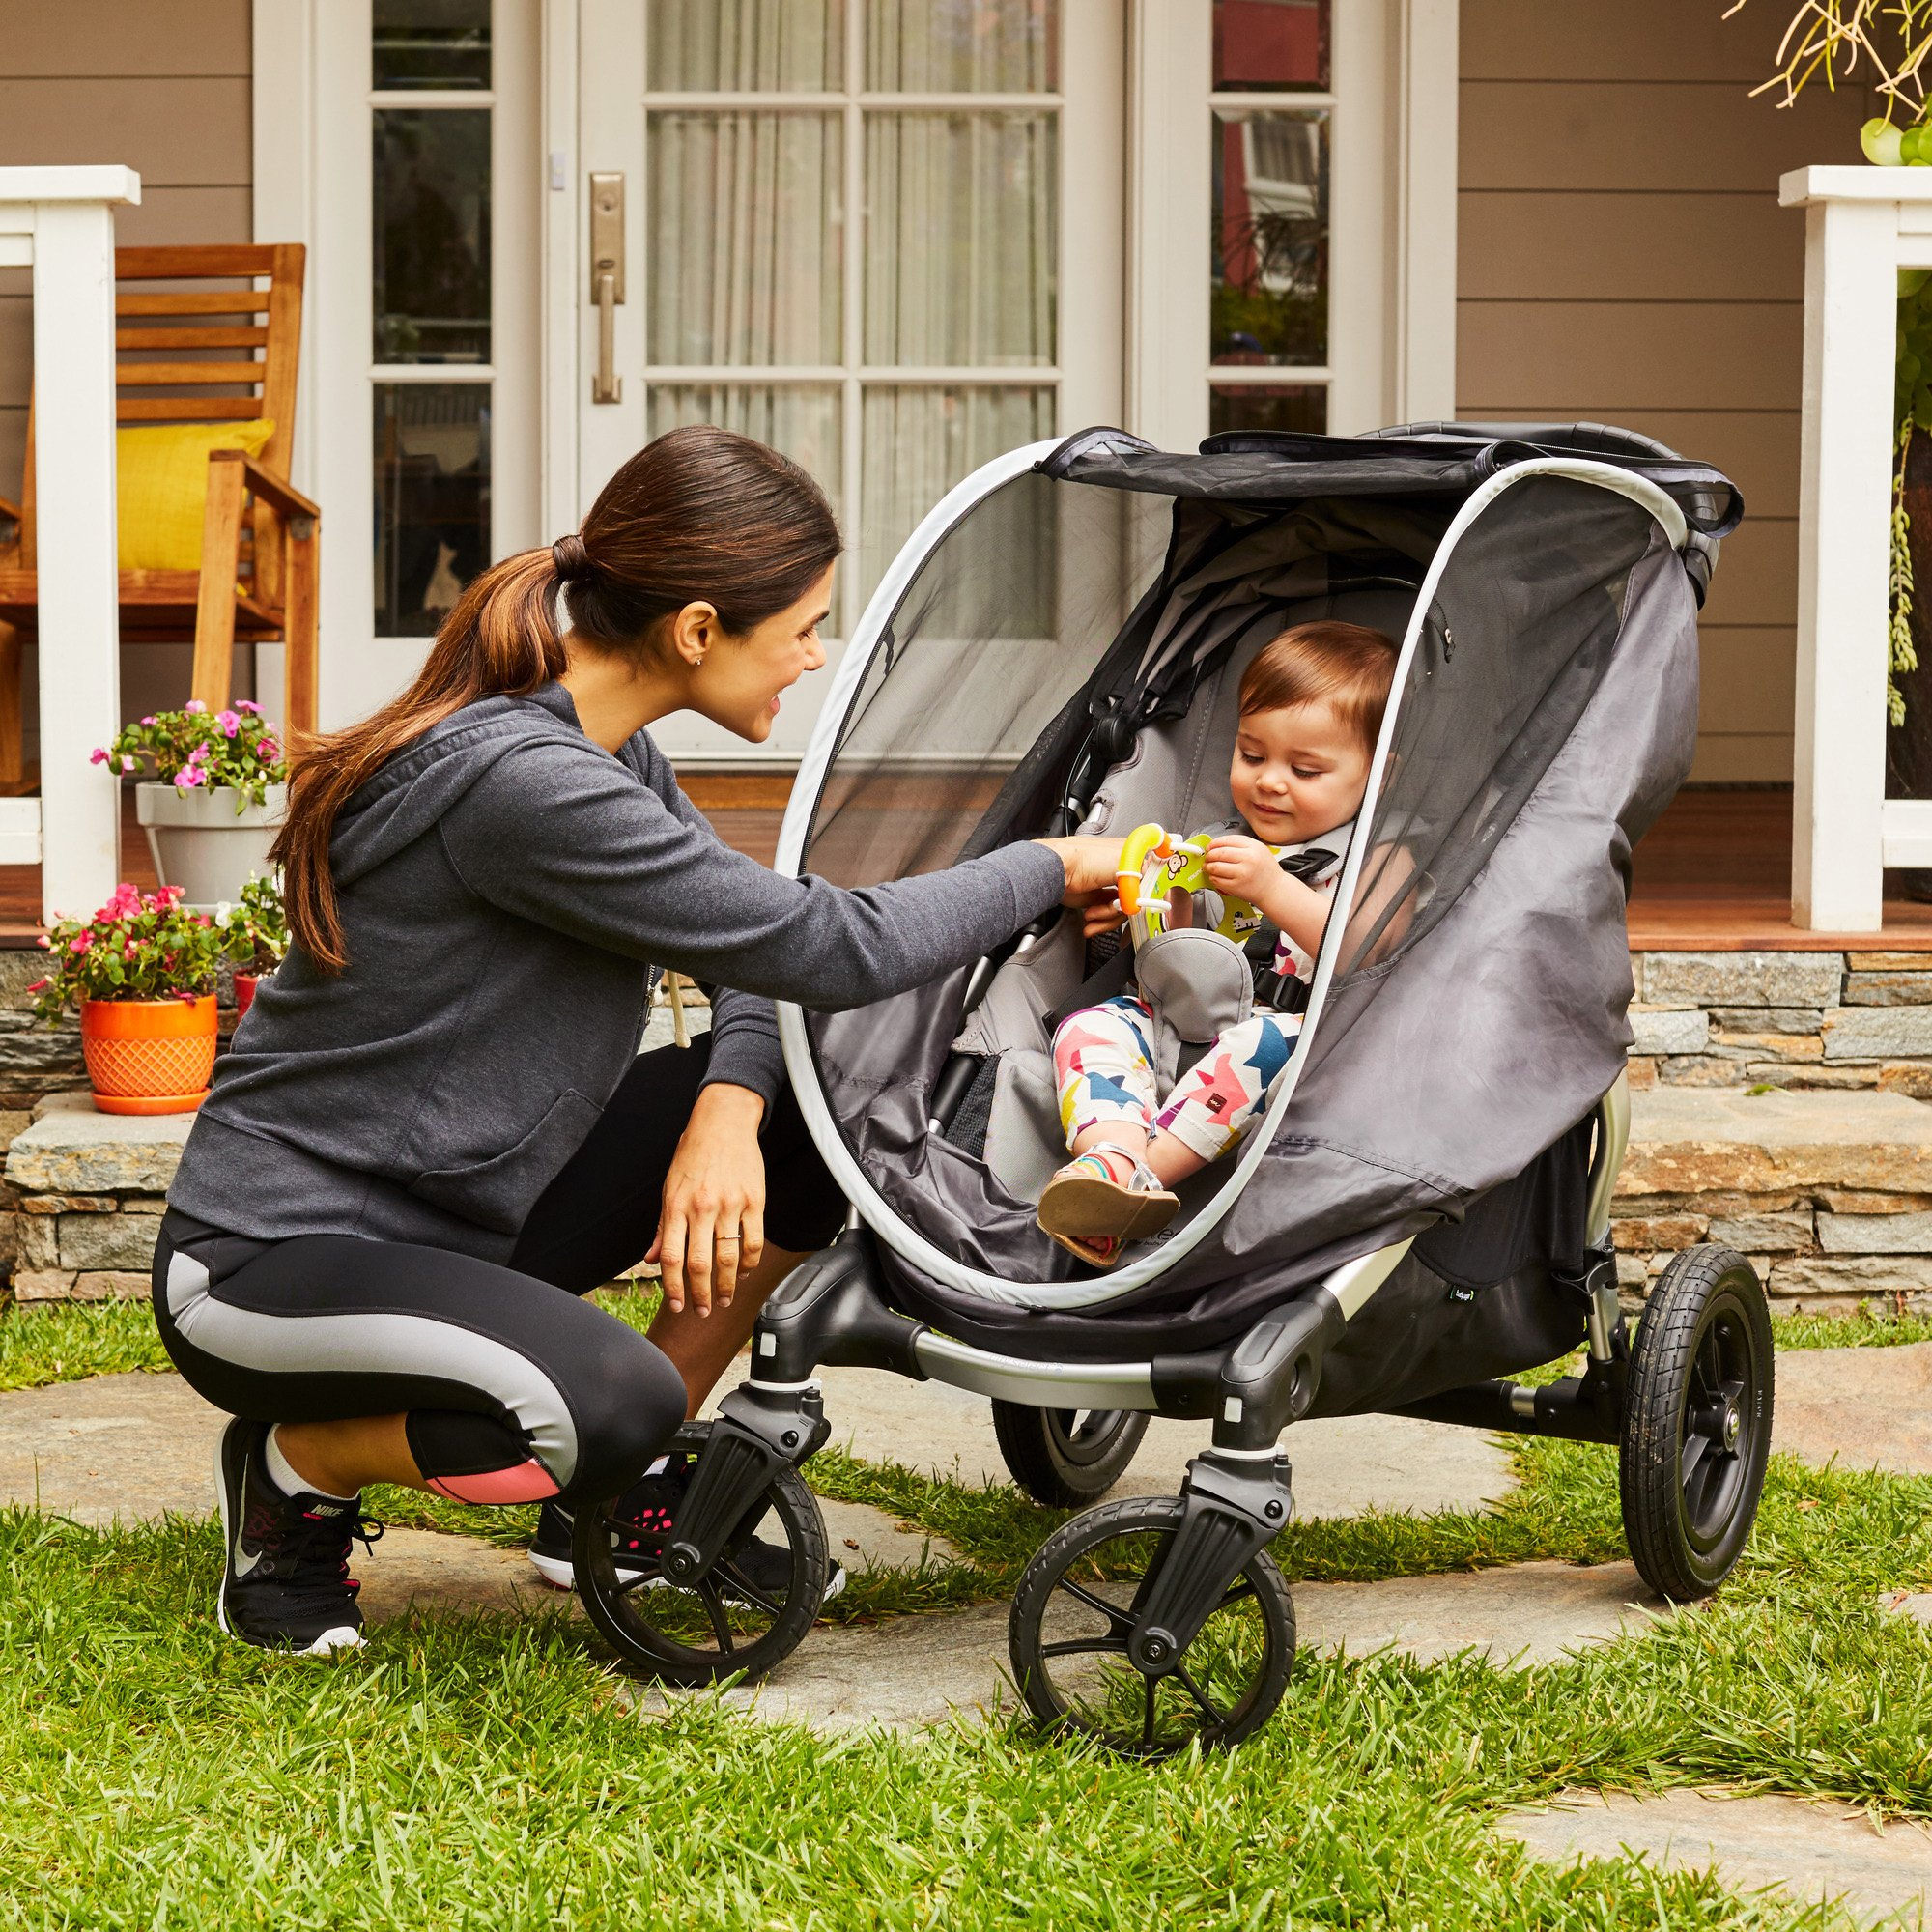 Munchkin Brica Shield Stroller Cover, Helps Block UVA/UVB Rays, Grey by Munchkin (Image #6)